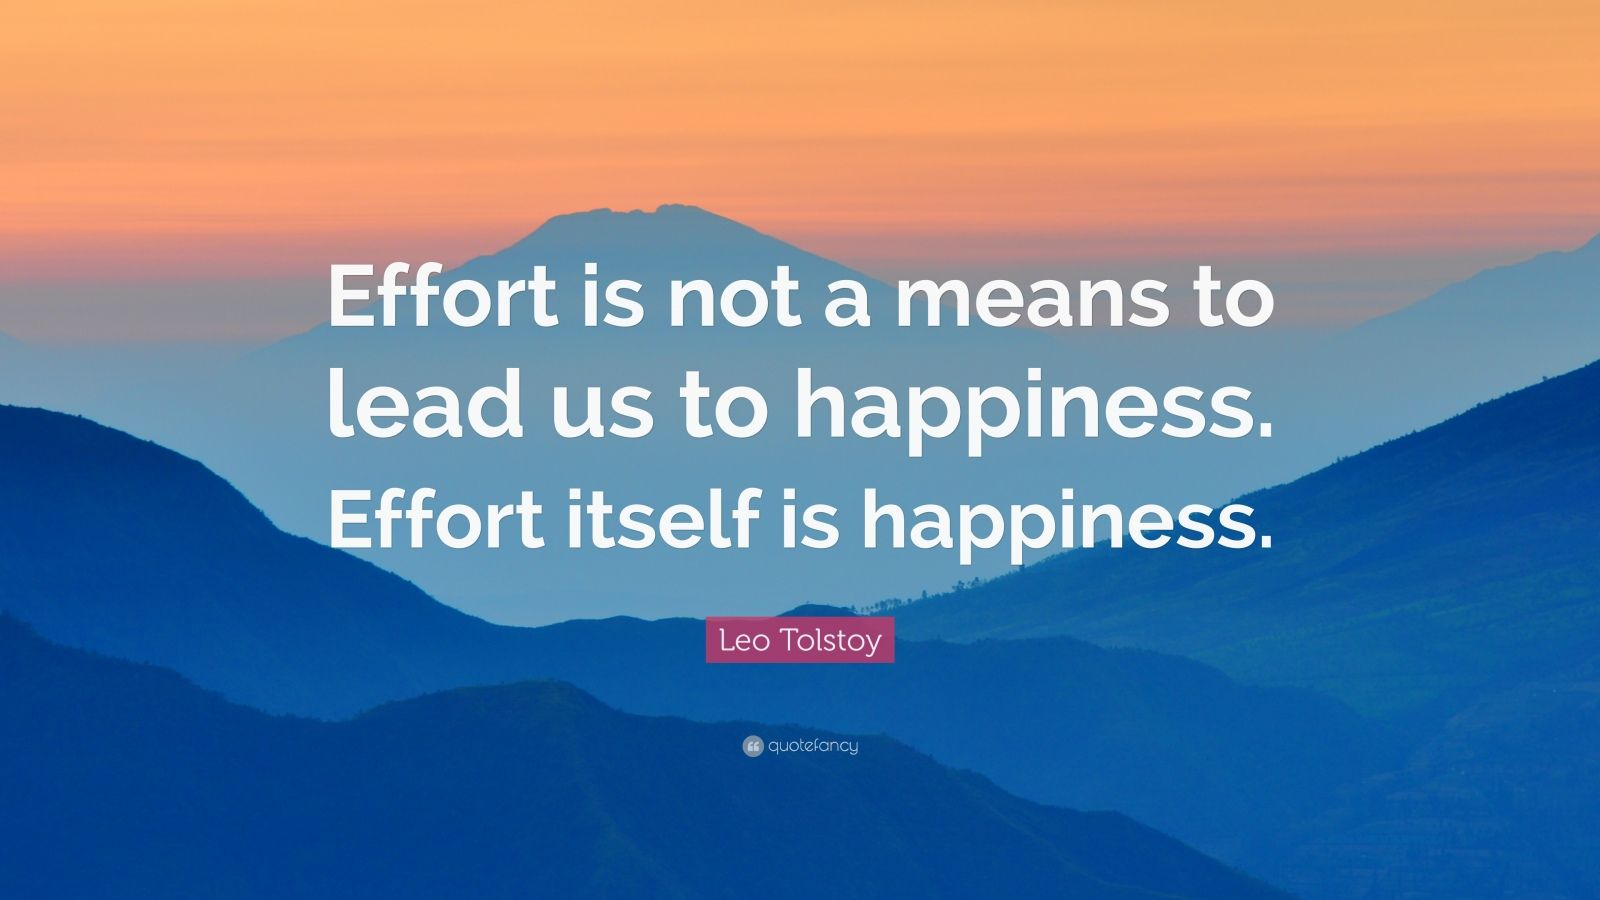 """Leo Tolstoy Quote: """"Effort is not a means to lead us to happiness. Effort itself is happiness."""""""